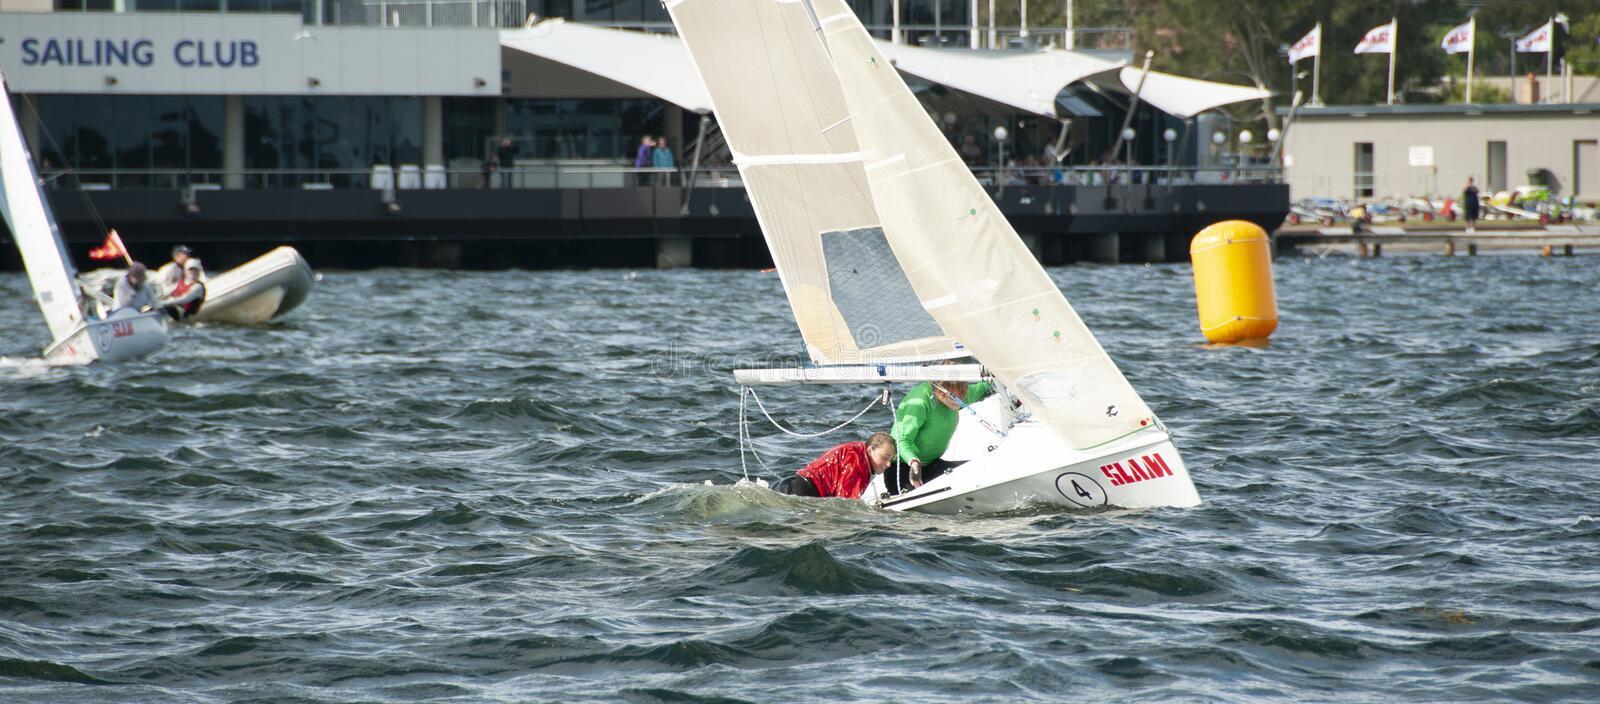 Girl overboard from racing dinghy. April 16, 2013: Editorial stock photography